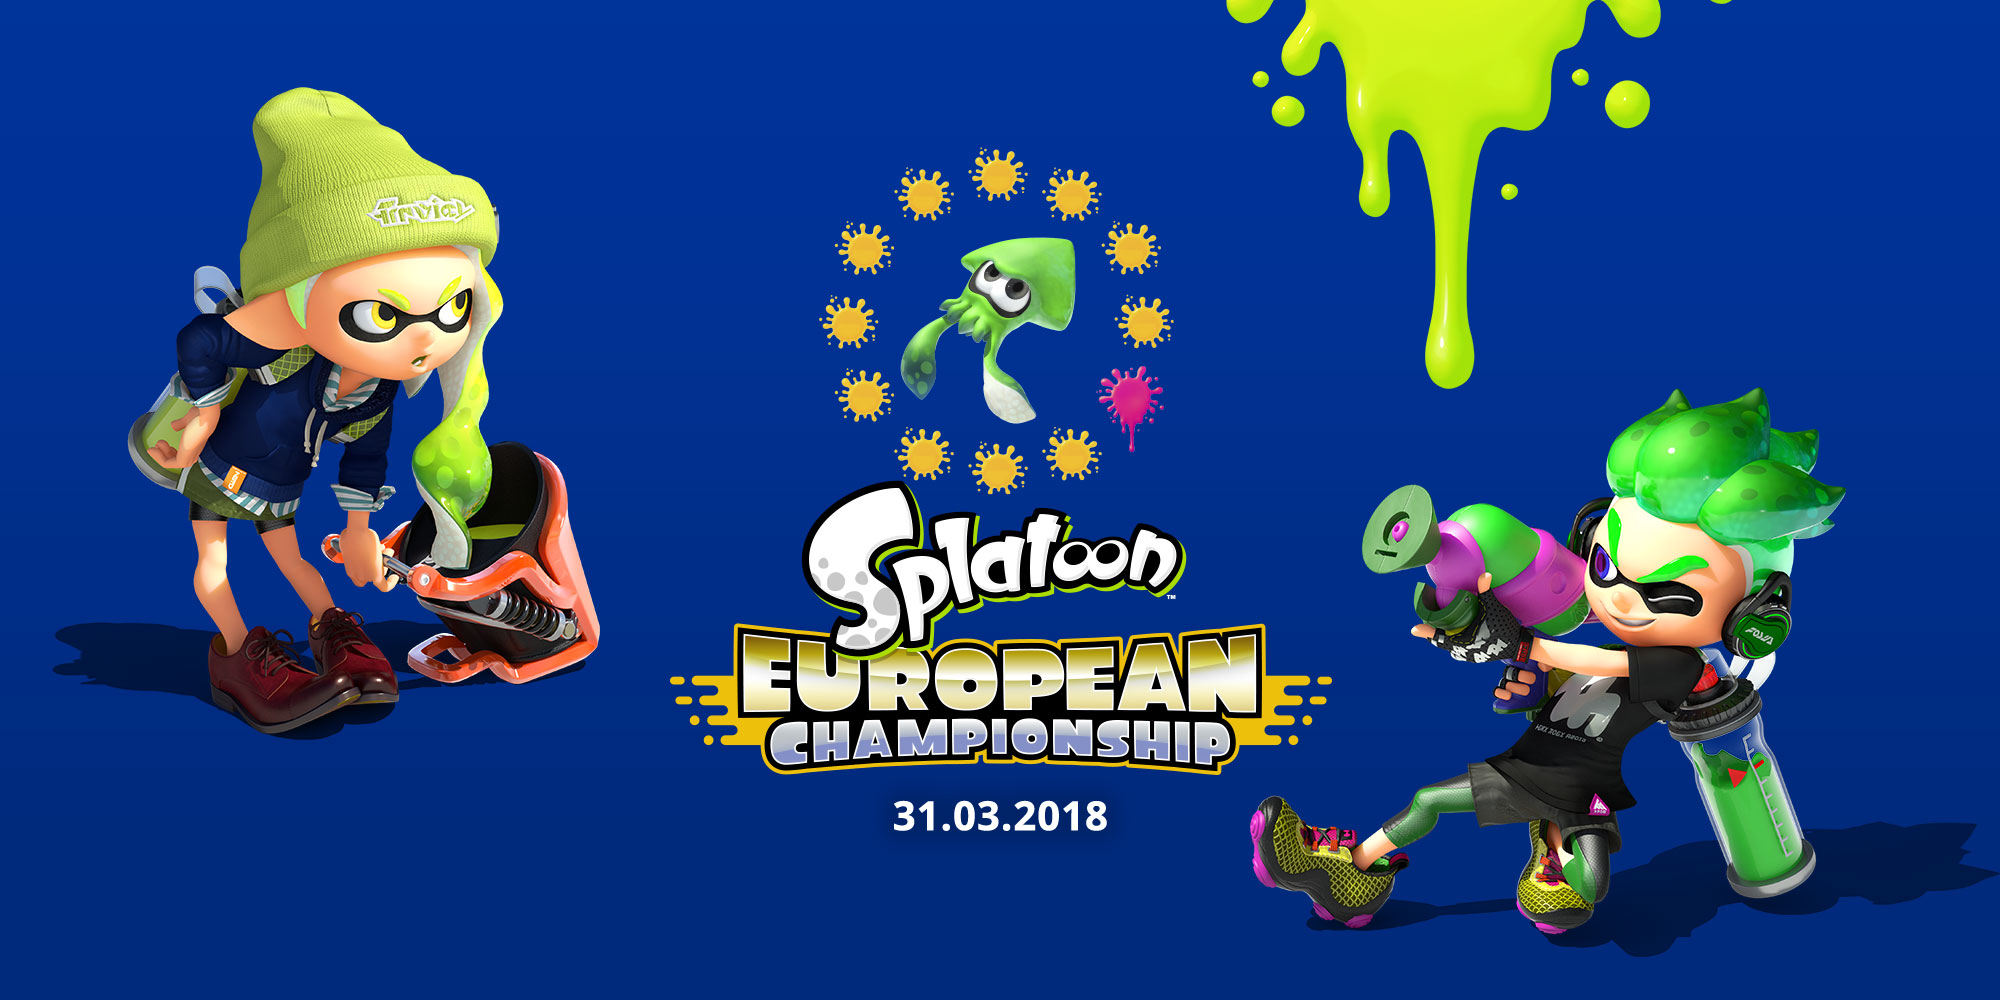 Catch up on the Splatoon European Championship in our extended highlights reel!